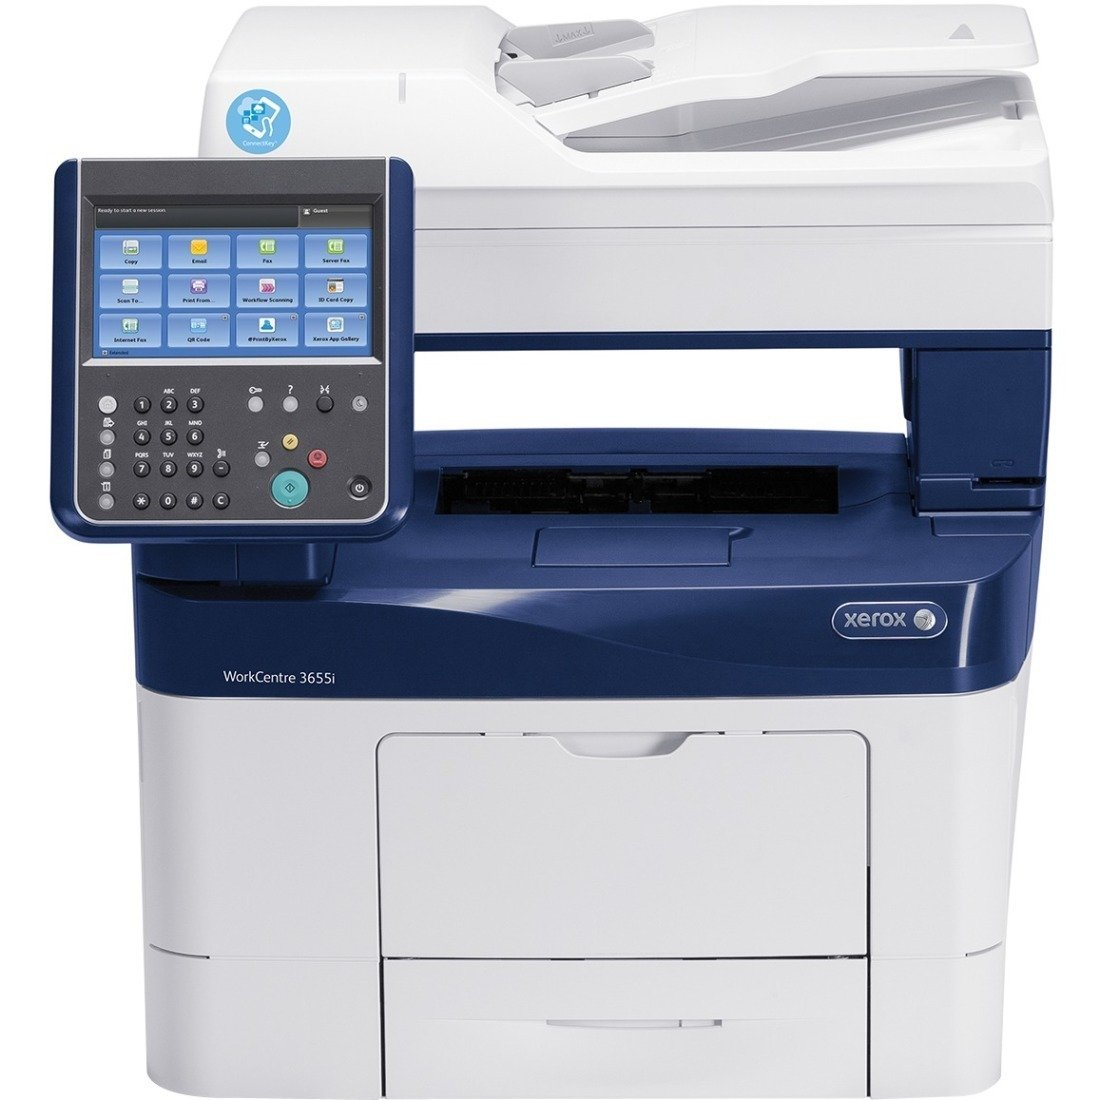 Xerox Workcentre 3655i Xm Laser Multifunction Printer Monochrome